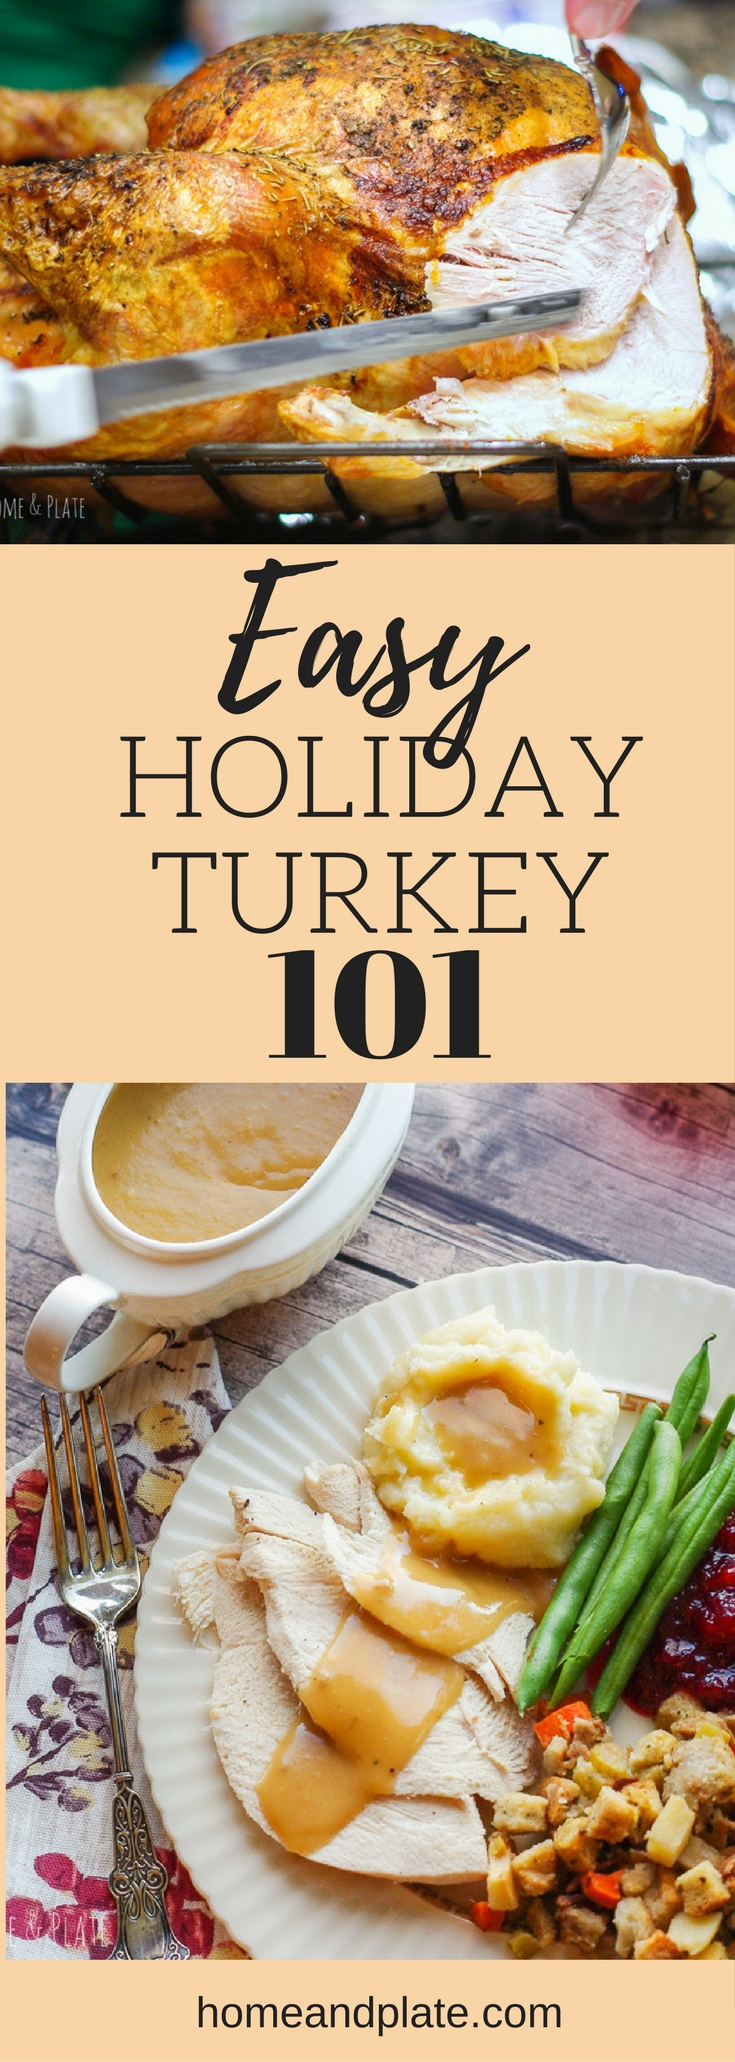 Easy Brined Oven Roasted Turkey | www.homeandplate.com | Brine and roast your turkey for the juiciest most flavorful showstopper on your holiday table. Get step-by-step instructions and plenty of tips to make your Thanksgiving and Christmas the best meal of the year! #thanksgiving101 #turkey101